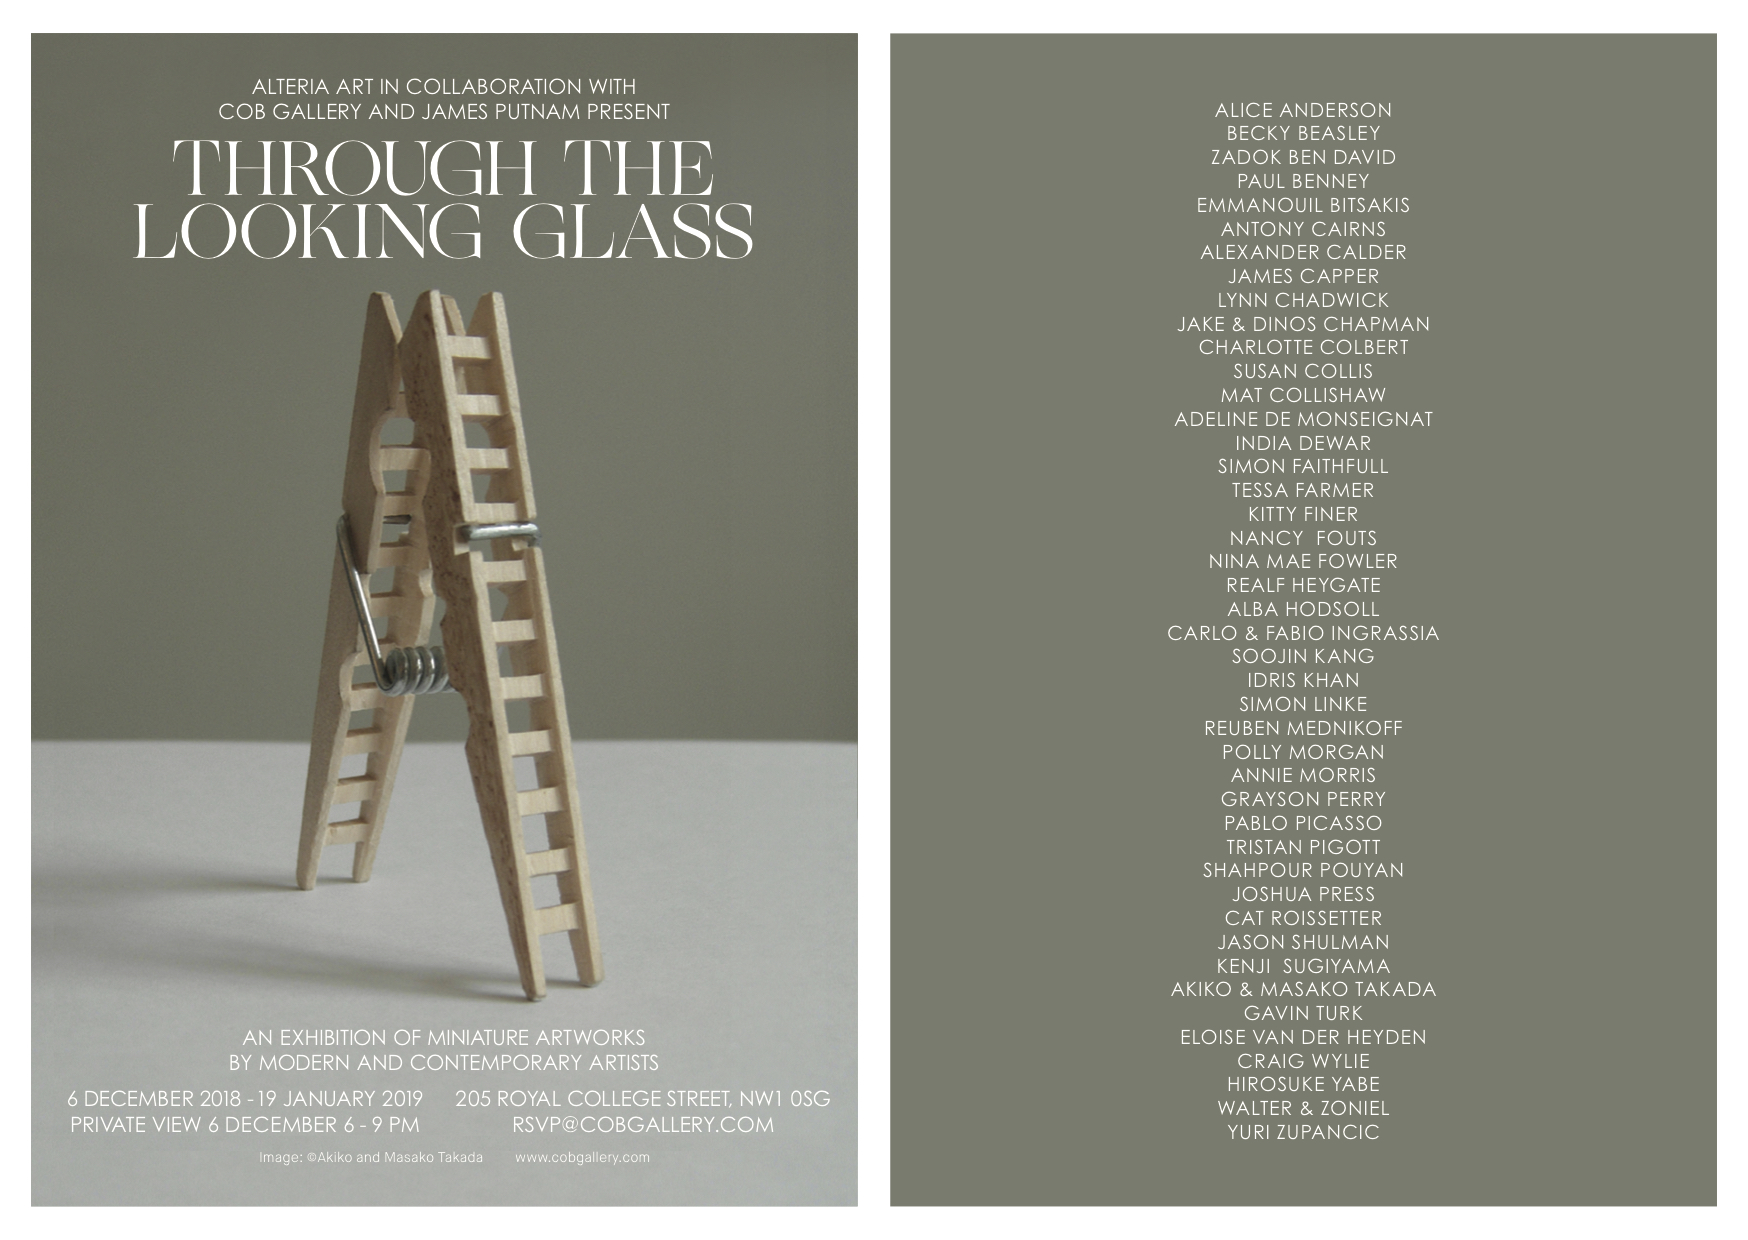 ThroughTheLookingGlass_A5_Flyer 2.jpg